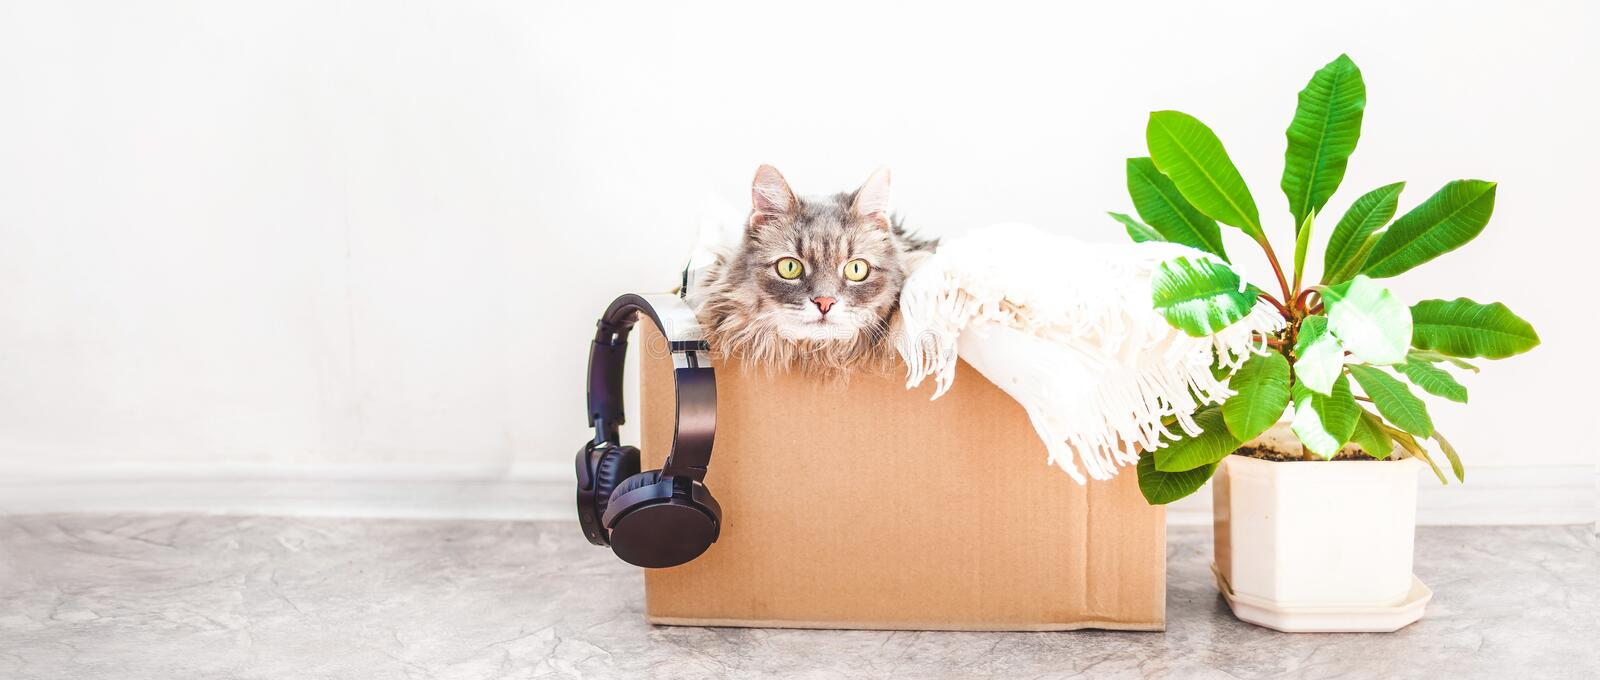 Things to move, a cat in a box, a flower in a pot jn a white background Garage sale and moving concept Copy space Banner.  stock photos